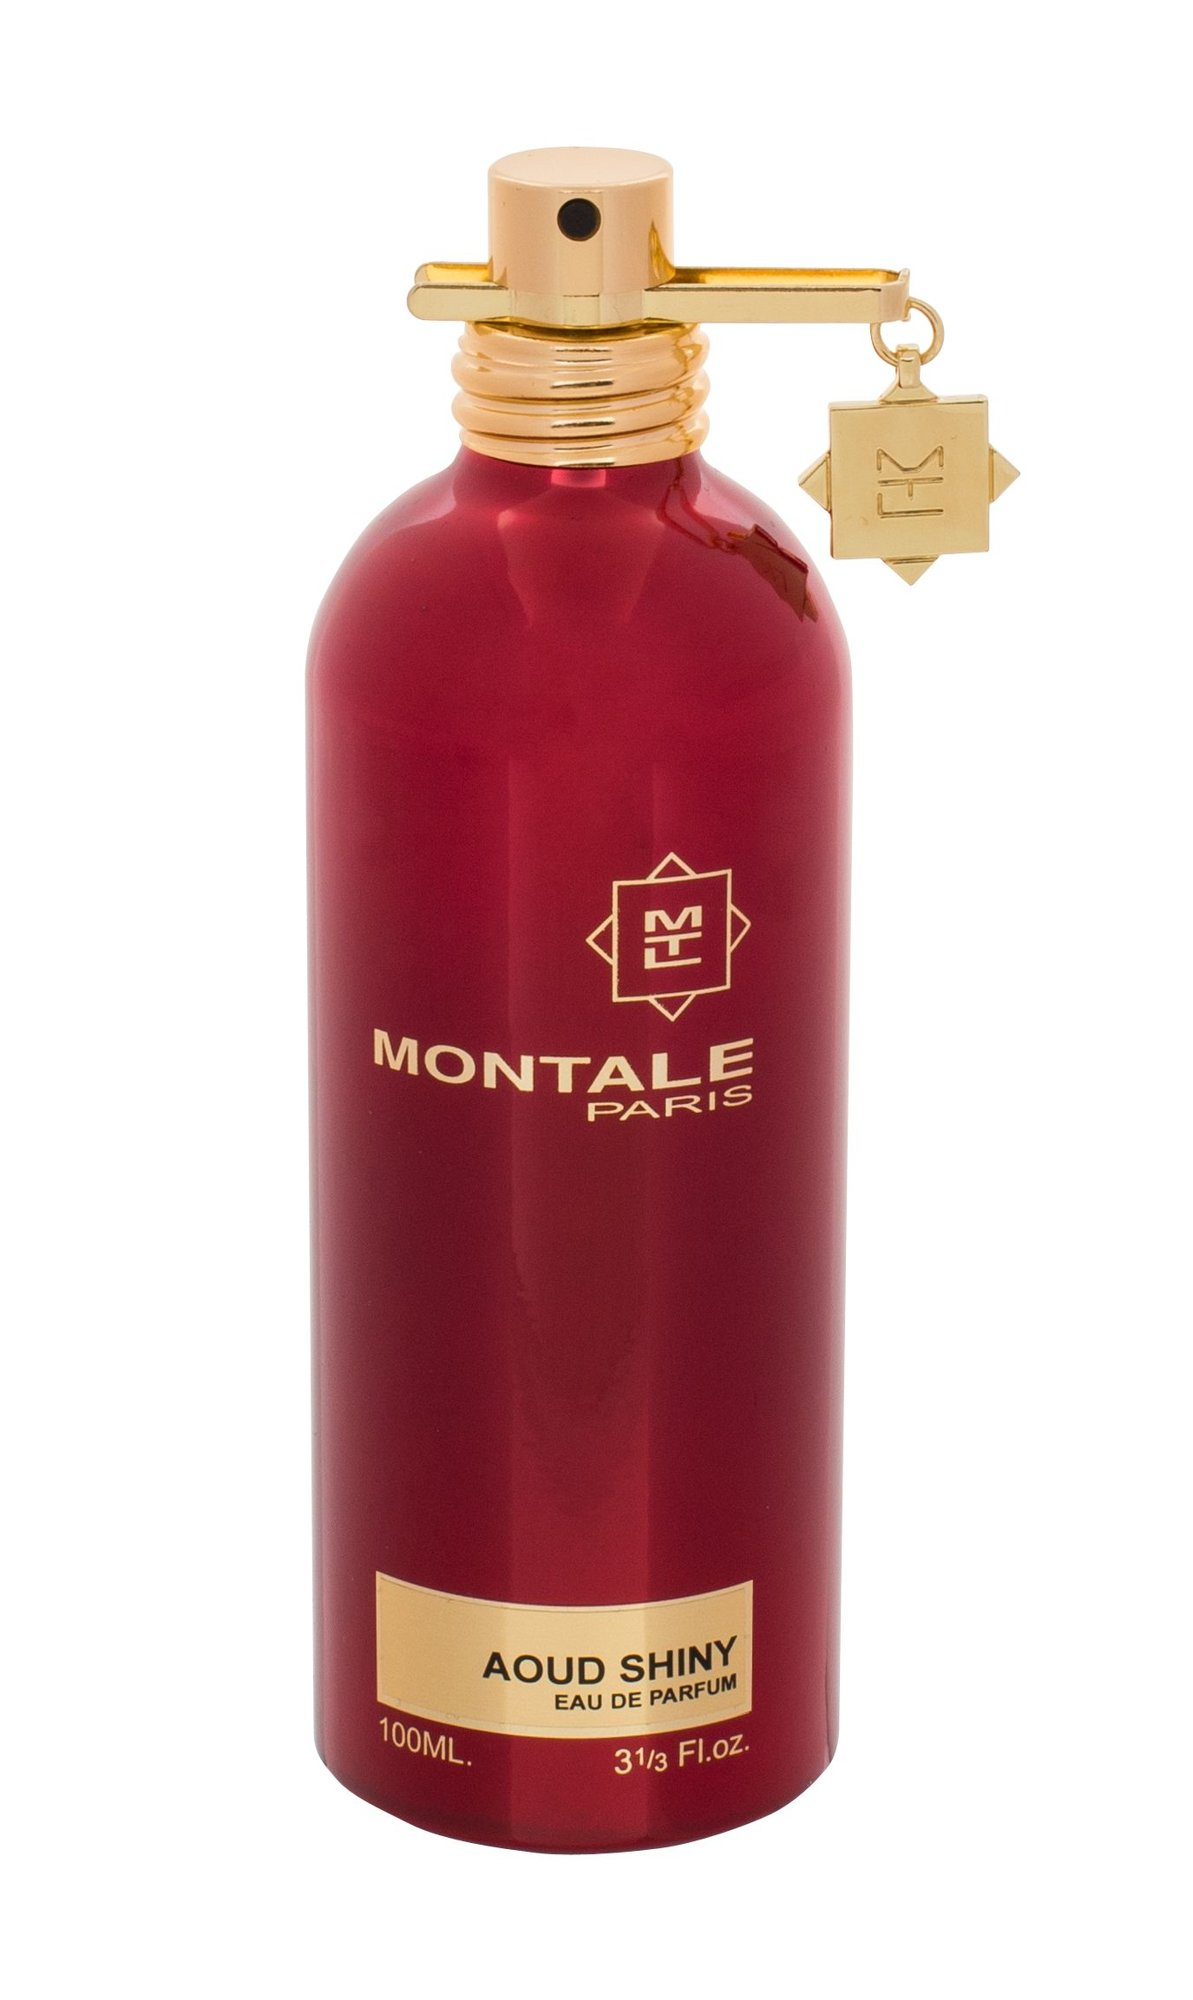 Montale Paris Aoud Shiny EDP 100ml